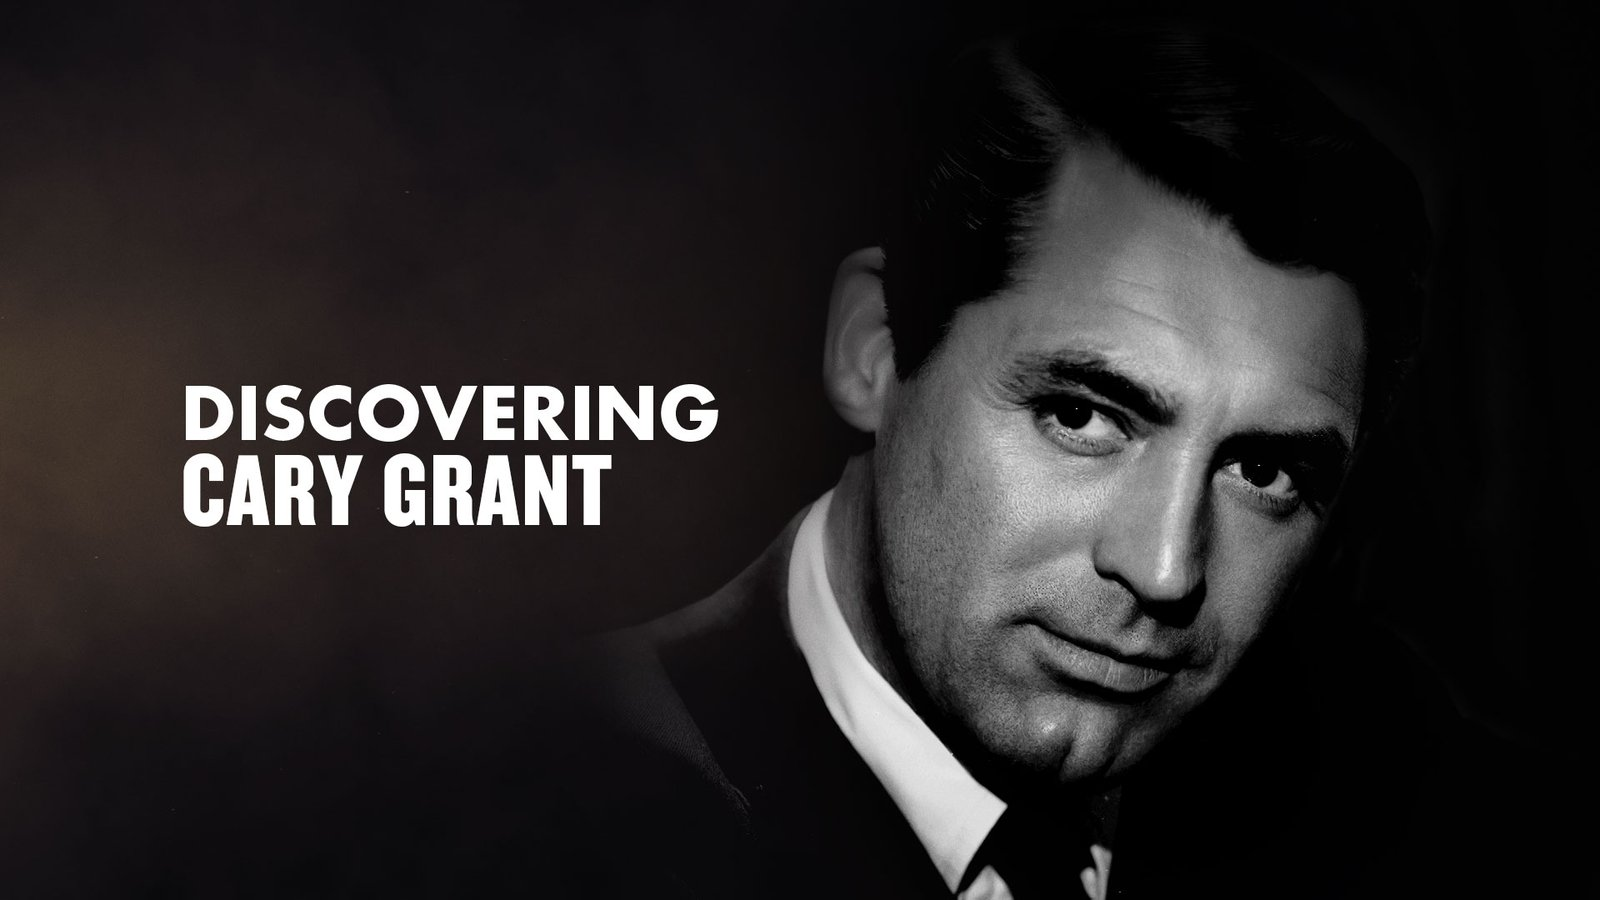 Discovering Cary Grant